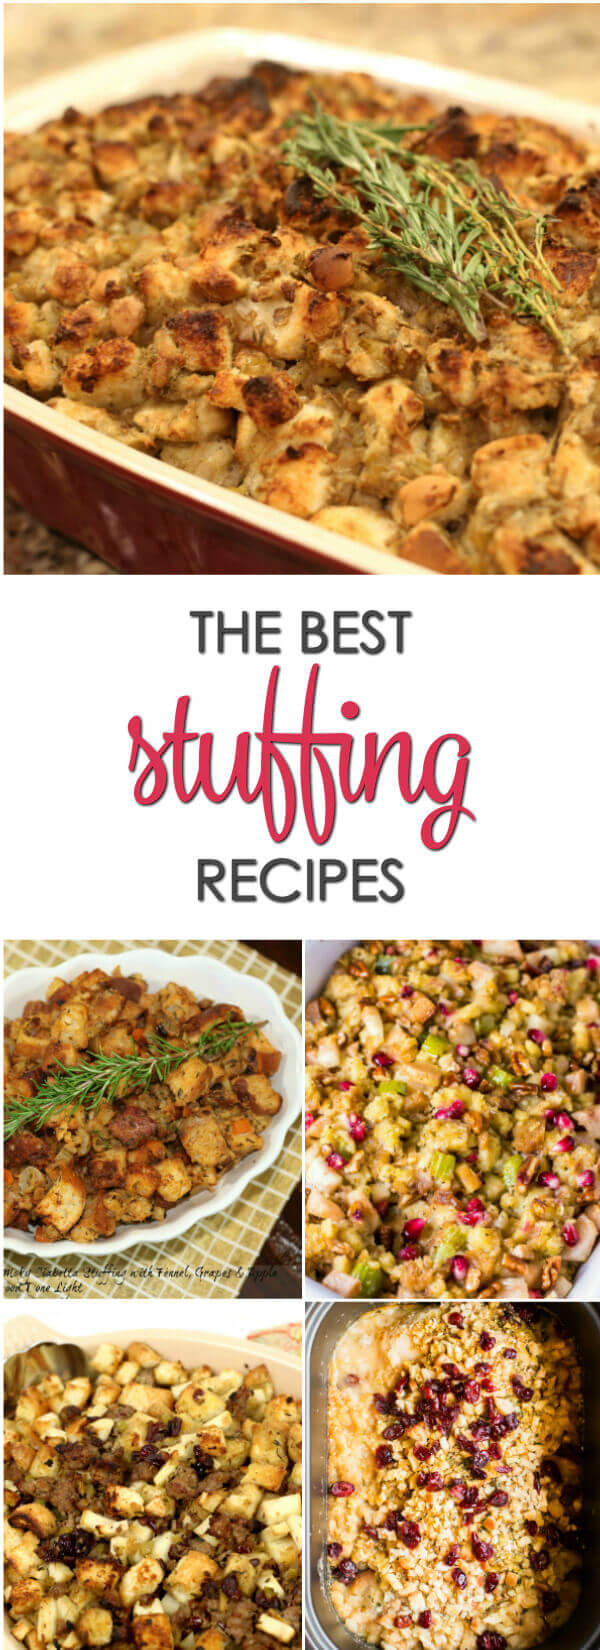 Looking for the perfect stuffing recipe?  Here are some of the best easy turkey stuffing recipes from across the web.  They are some of the best Thanksgiving recipes ever.